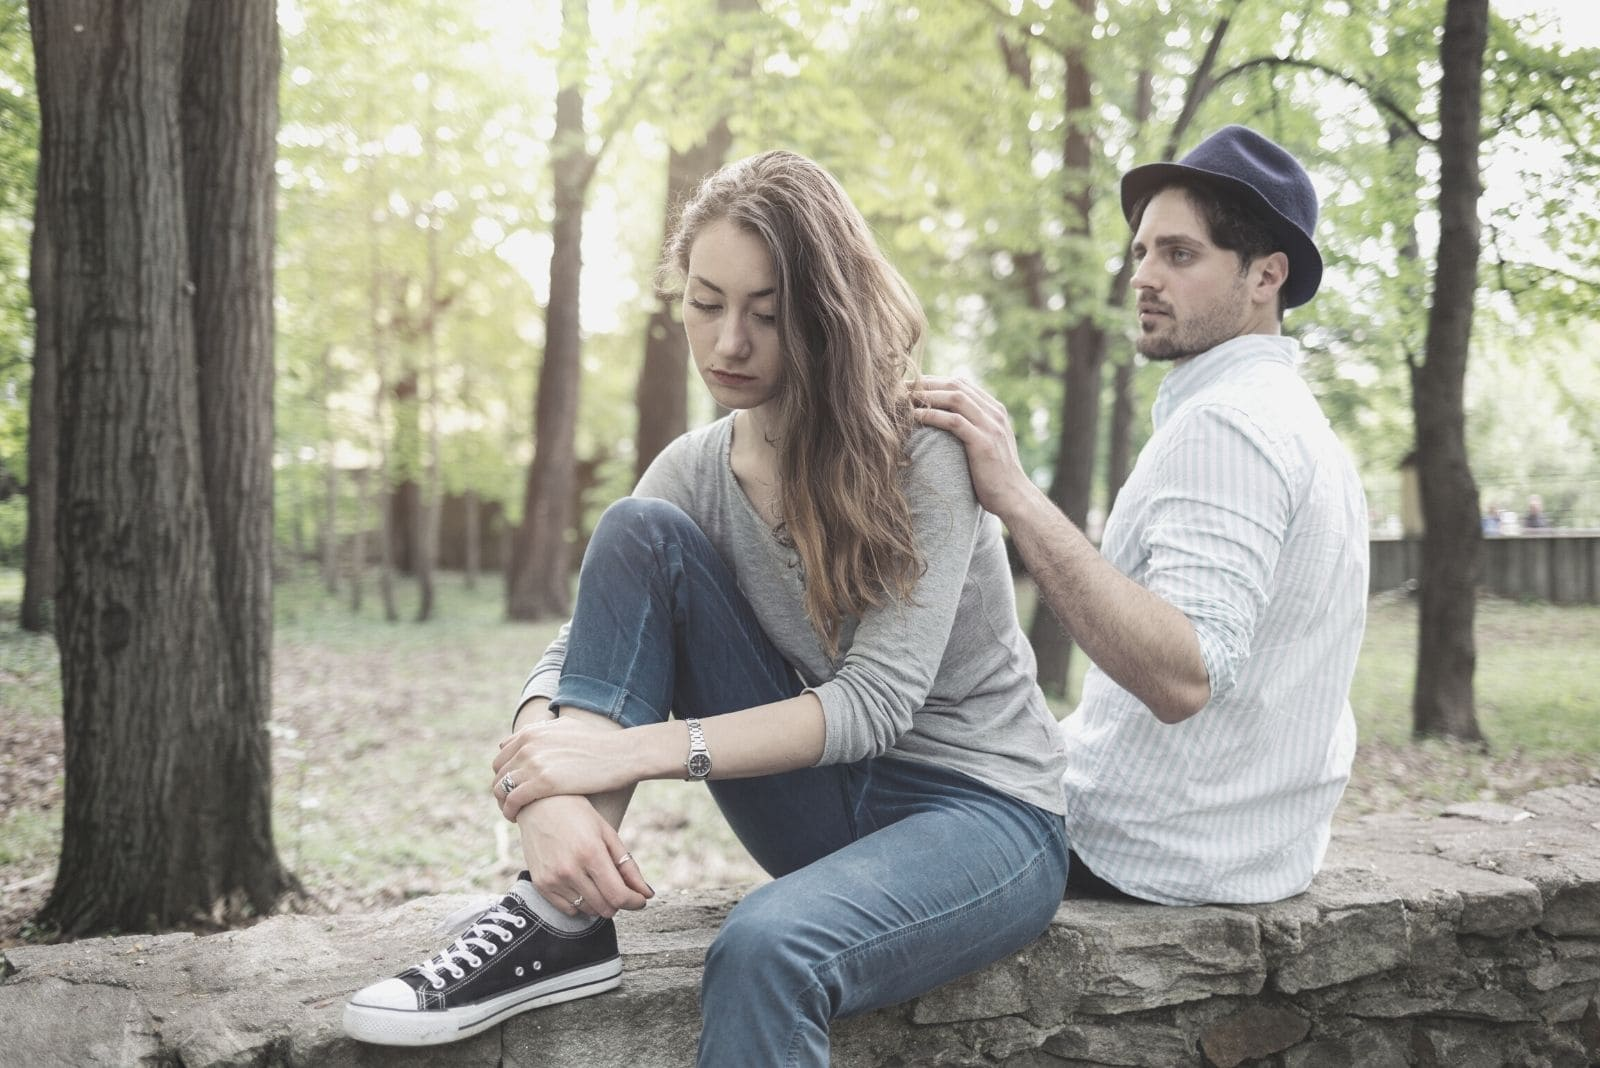 boyfriend looking worried tapping woman's shoulder breaking up while sitting in the bench in the park